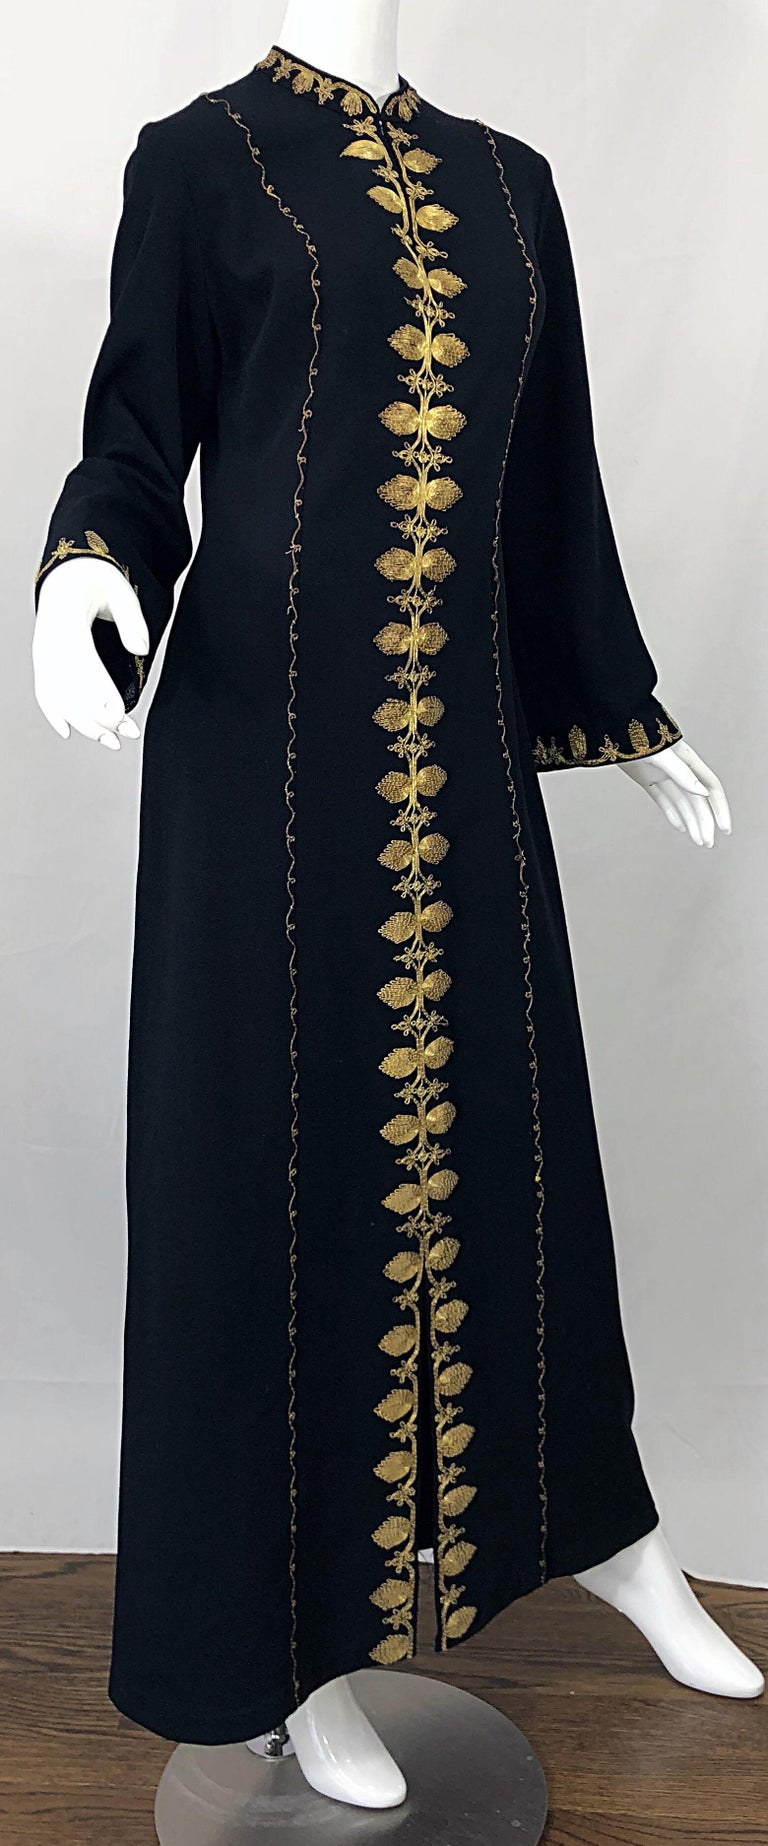 1970s Moroccan Black + Gold Metal Embroidered Vintage 70s Caftan Maxi Dress For Sale 1